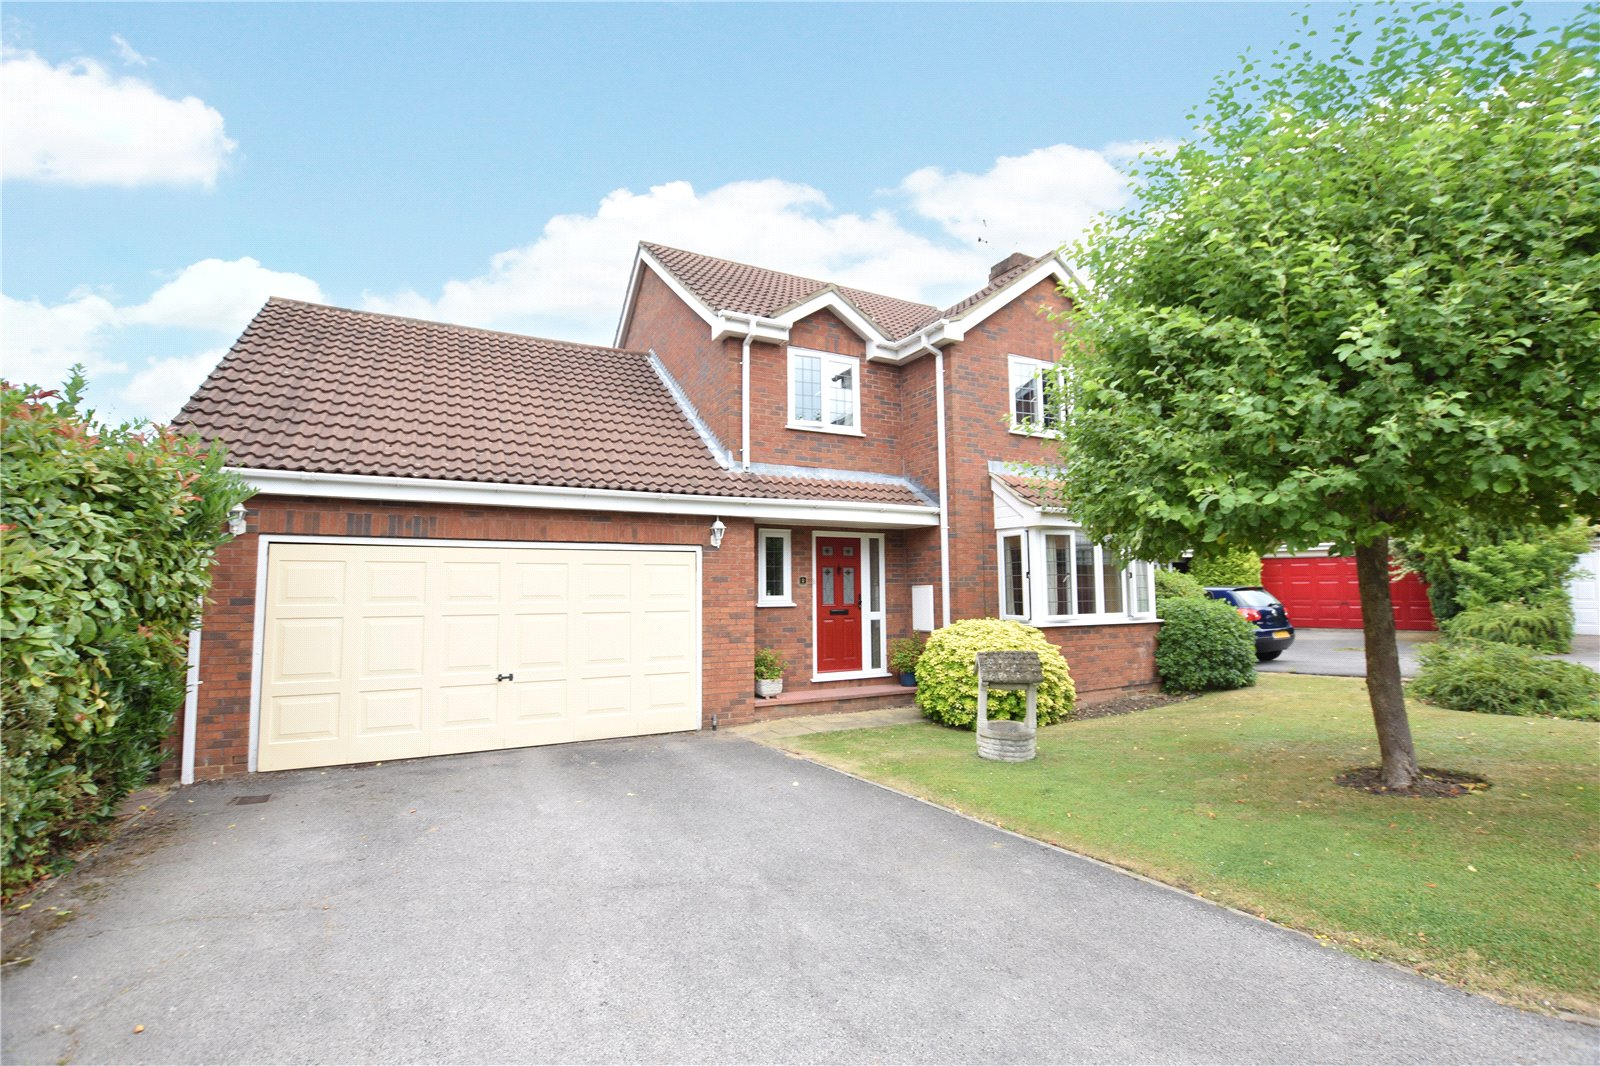 4 Bedrooms Detached House for sale in Lutterworth Close, Bracknell, Berkshire, RG42